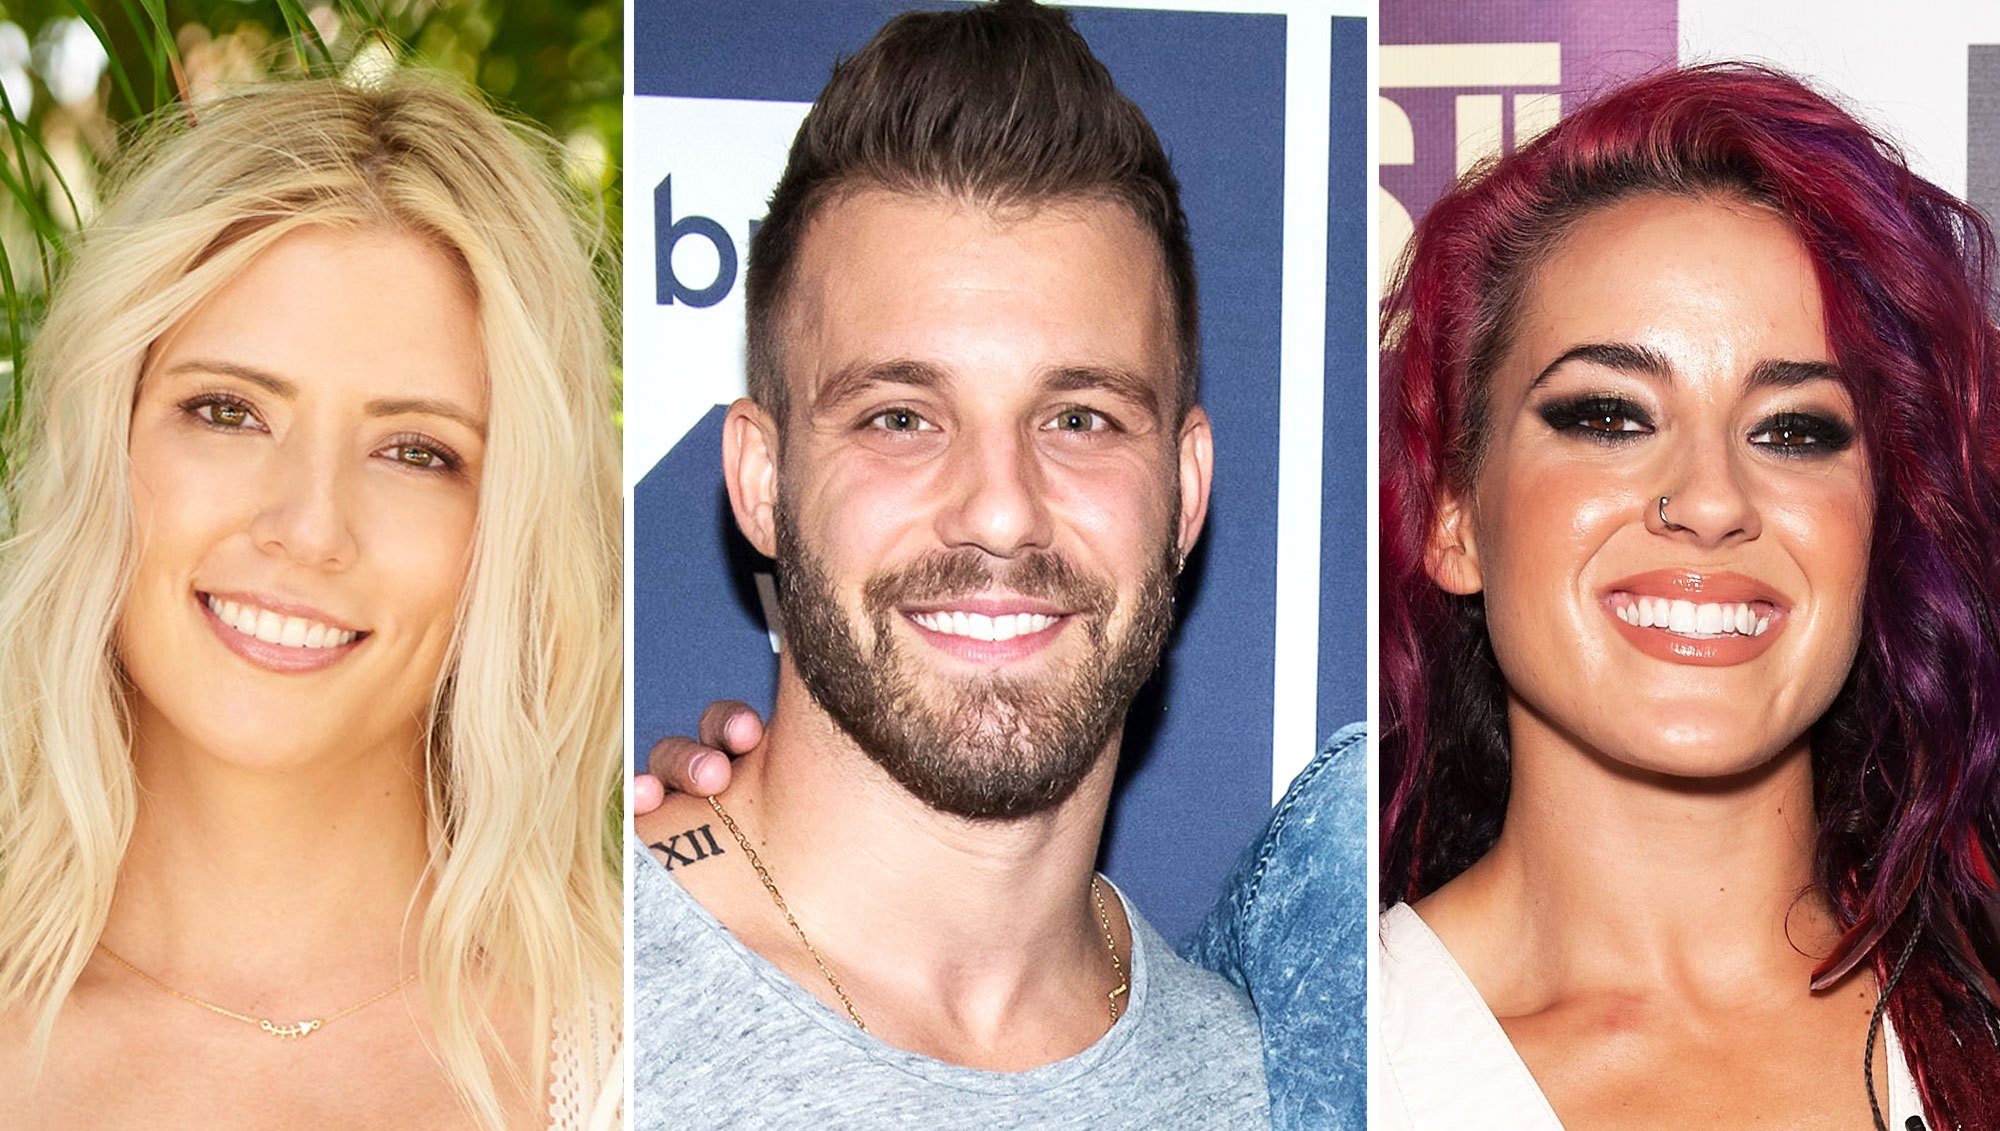 Danielle Maltby, Cara Maria and Paul Calafiore Each Tell Their Side of Complicated Relationship